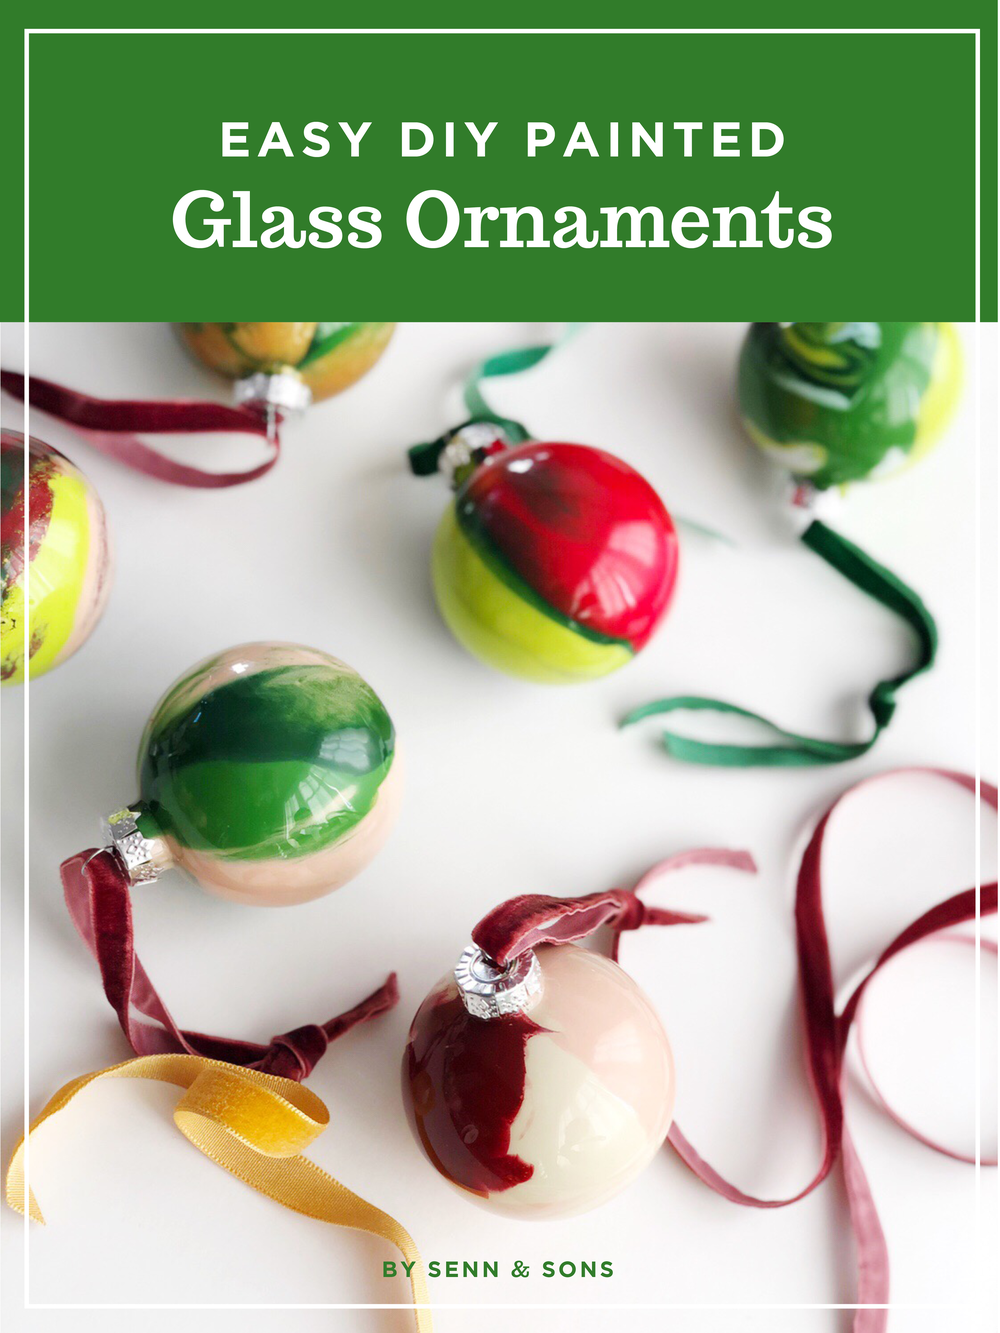 DIY Painted Glass Ornaments.JPG